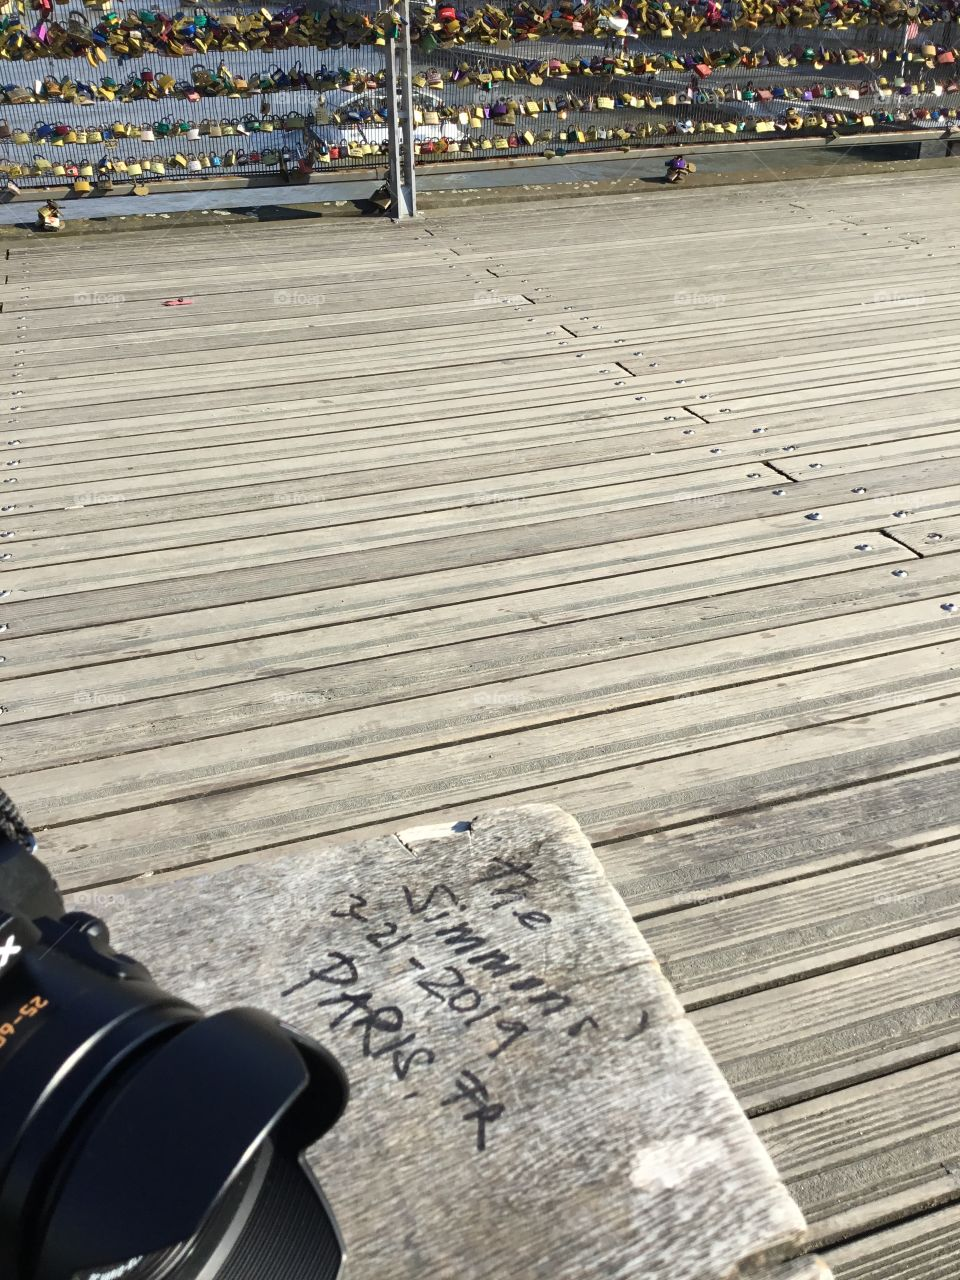 Left my inscription on the bench in Paris, France